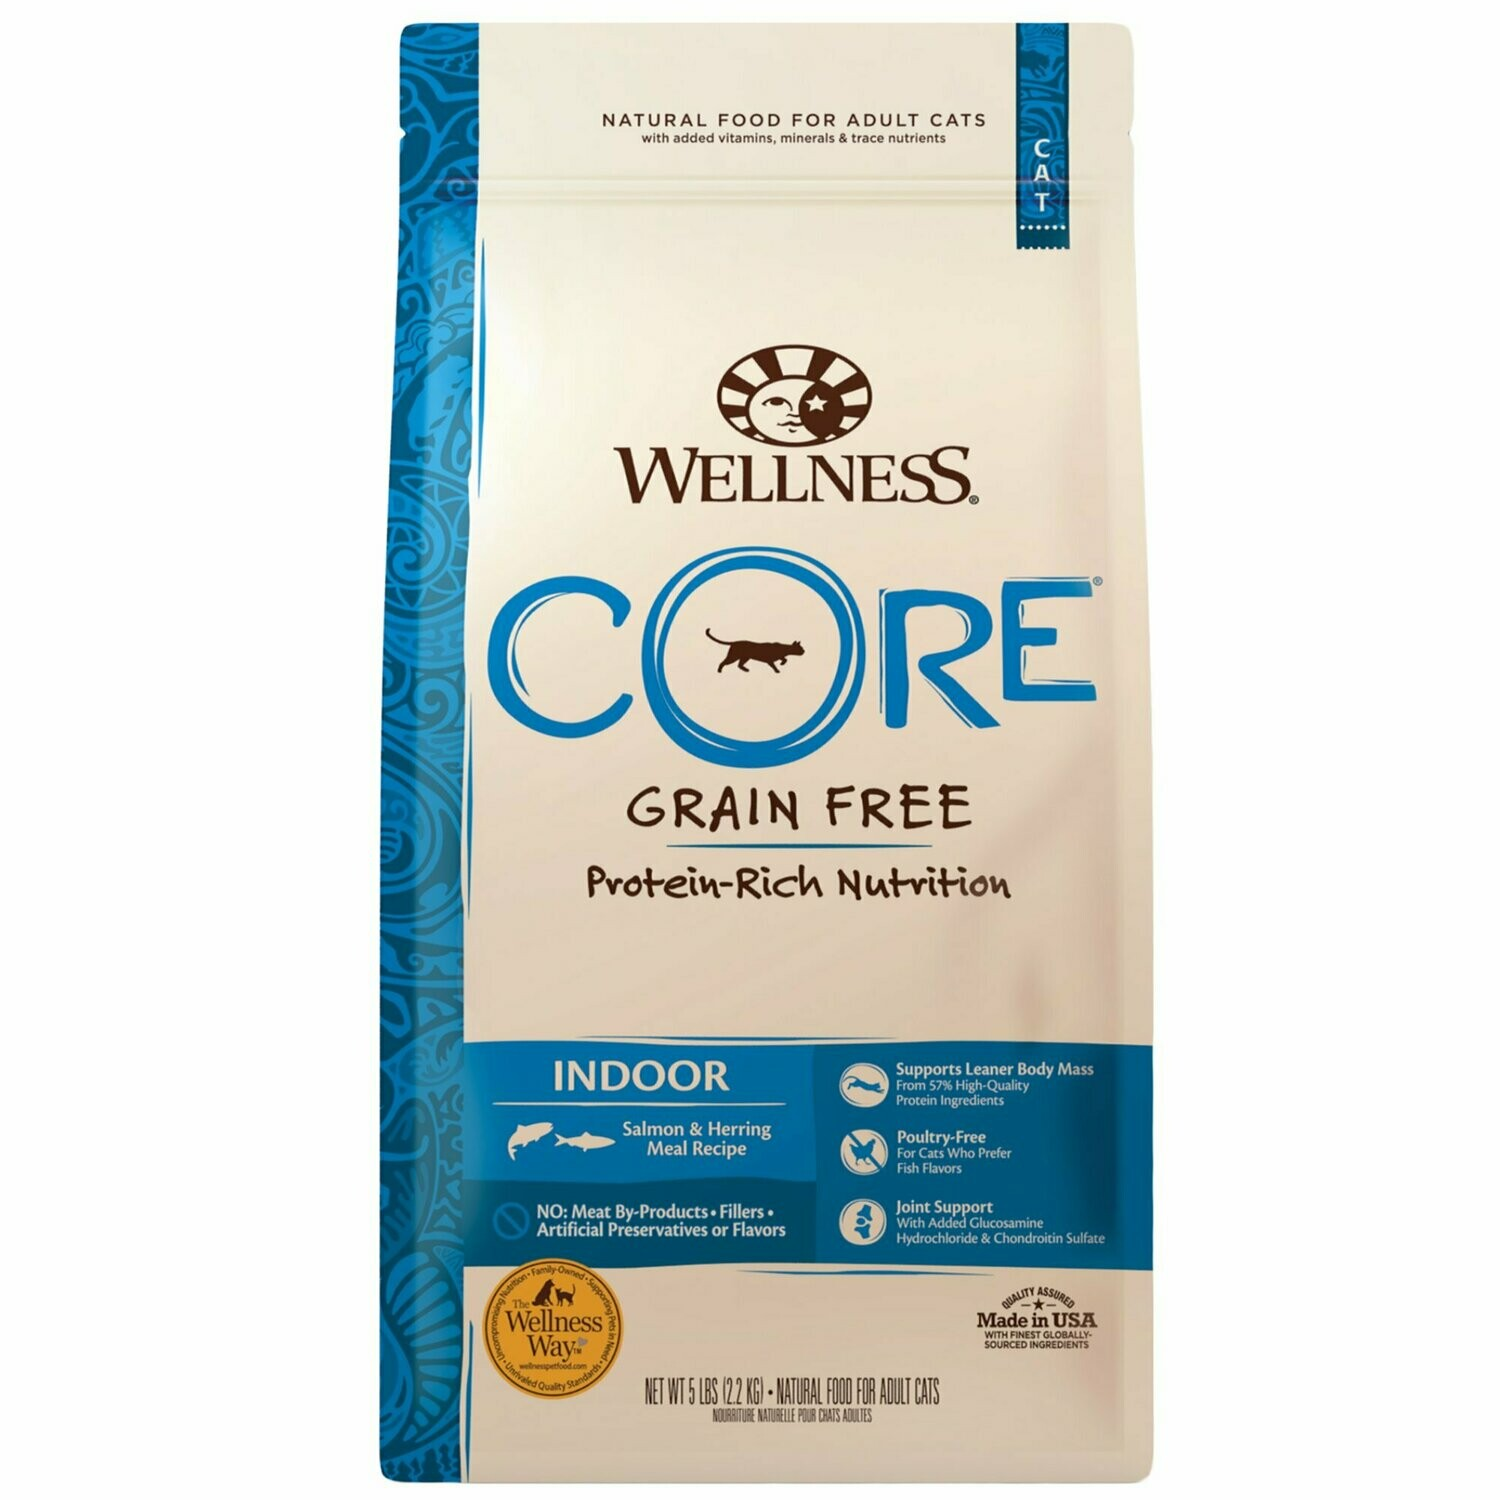 Wellness CORE Natural Grain Free Indoor Salmon & Herring Dry Cat Food, 5 lbs. (9/19) (A.F2)